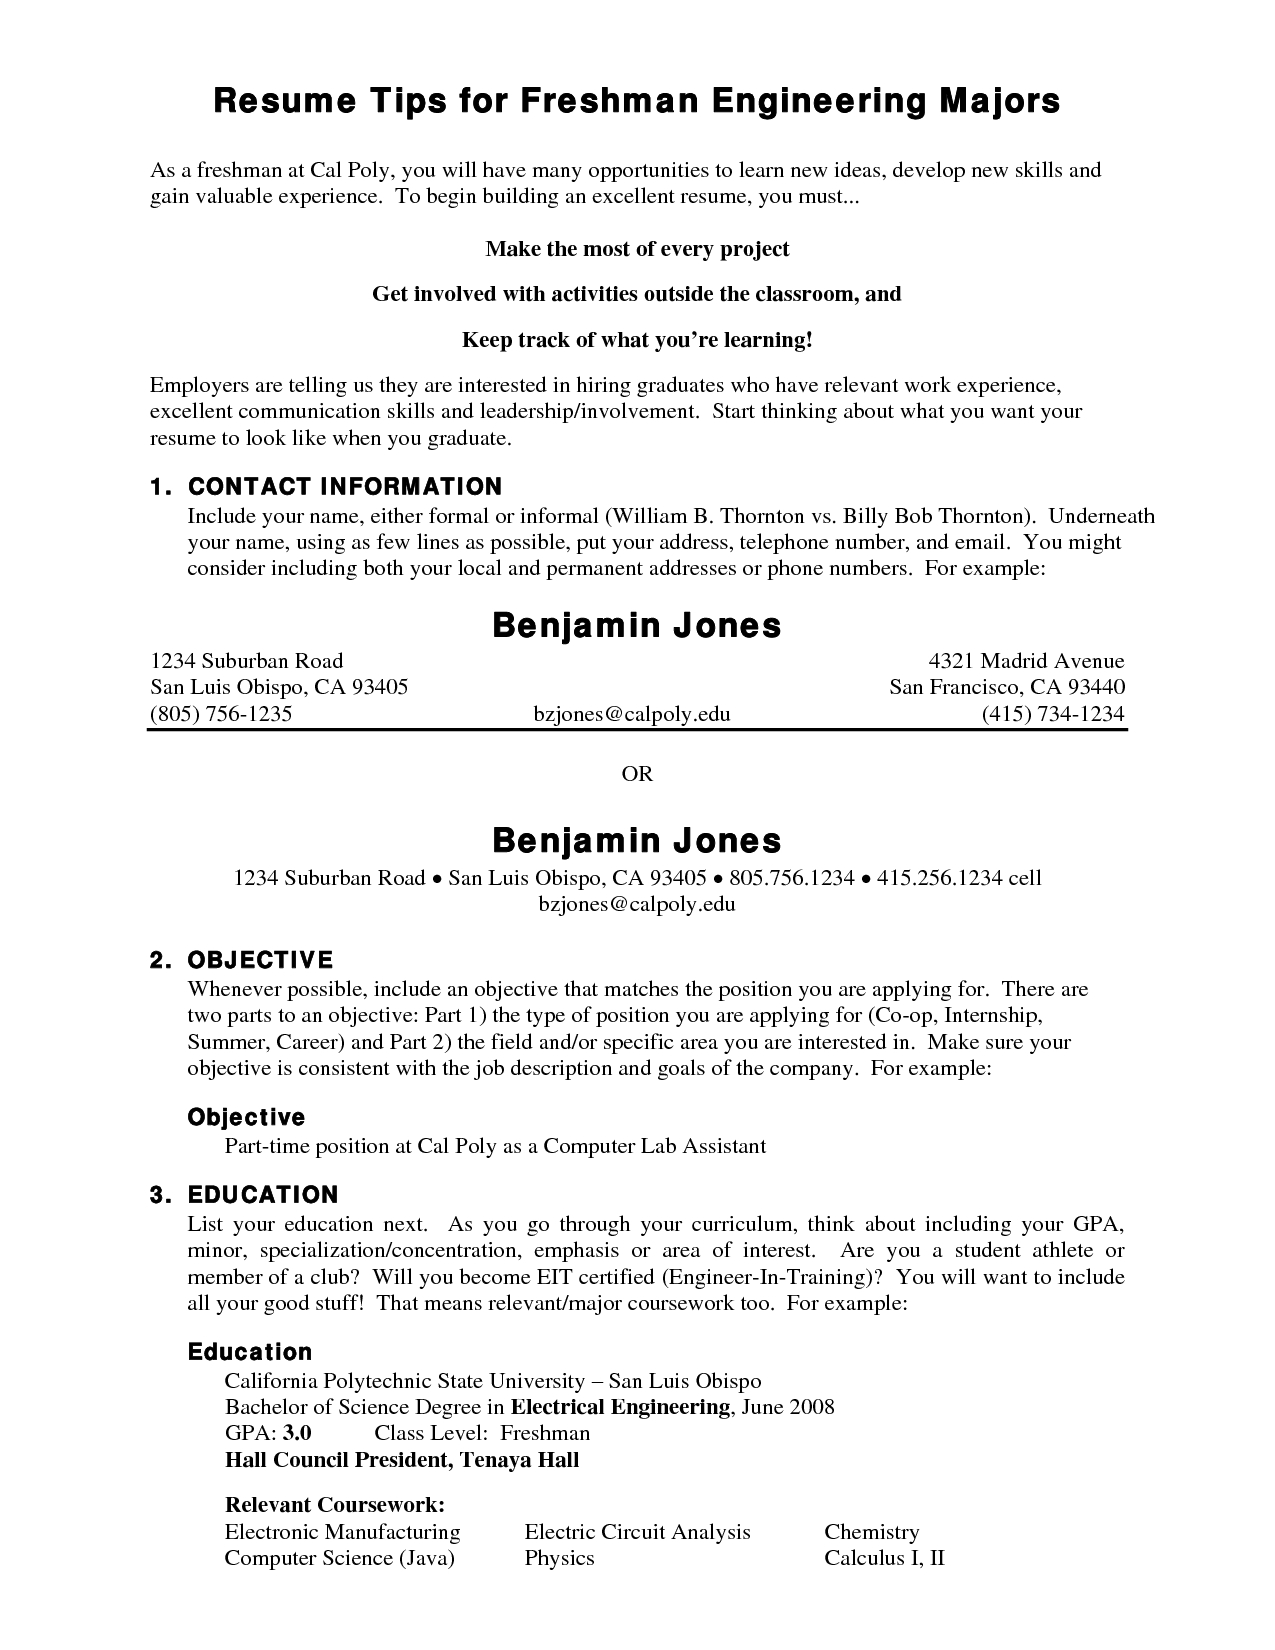 10 Most Popular Summer Job Ideas For College Students amusing resumes samples for college students summer jobs for your